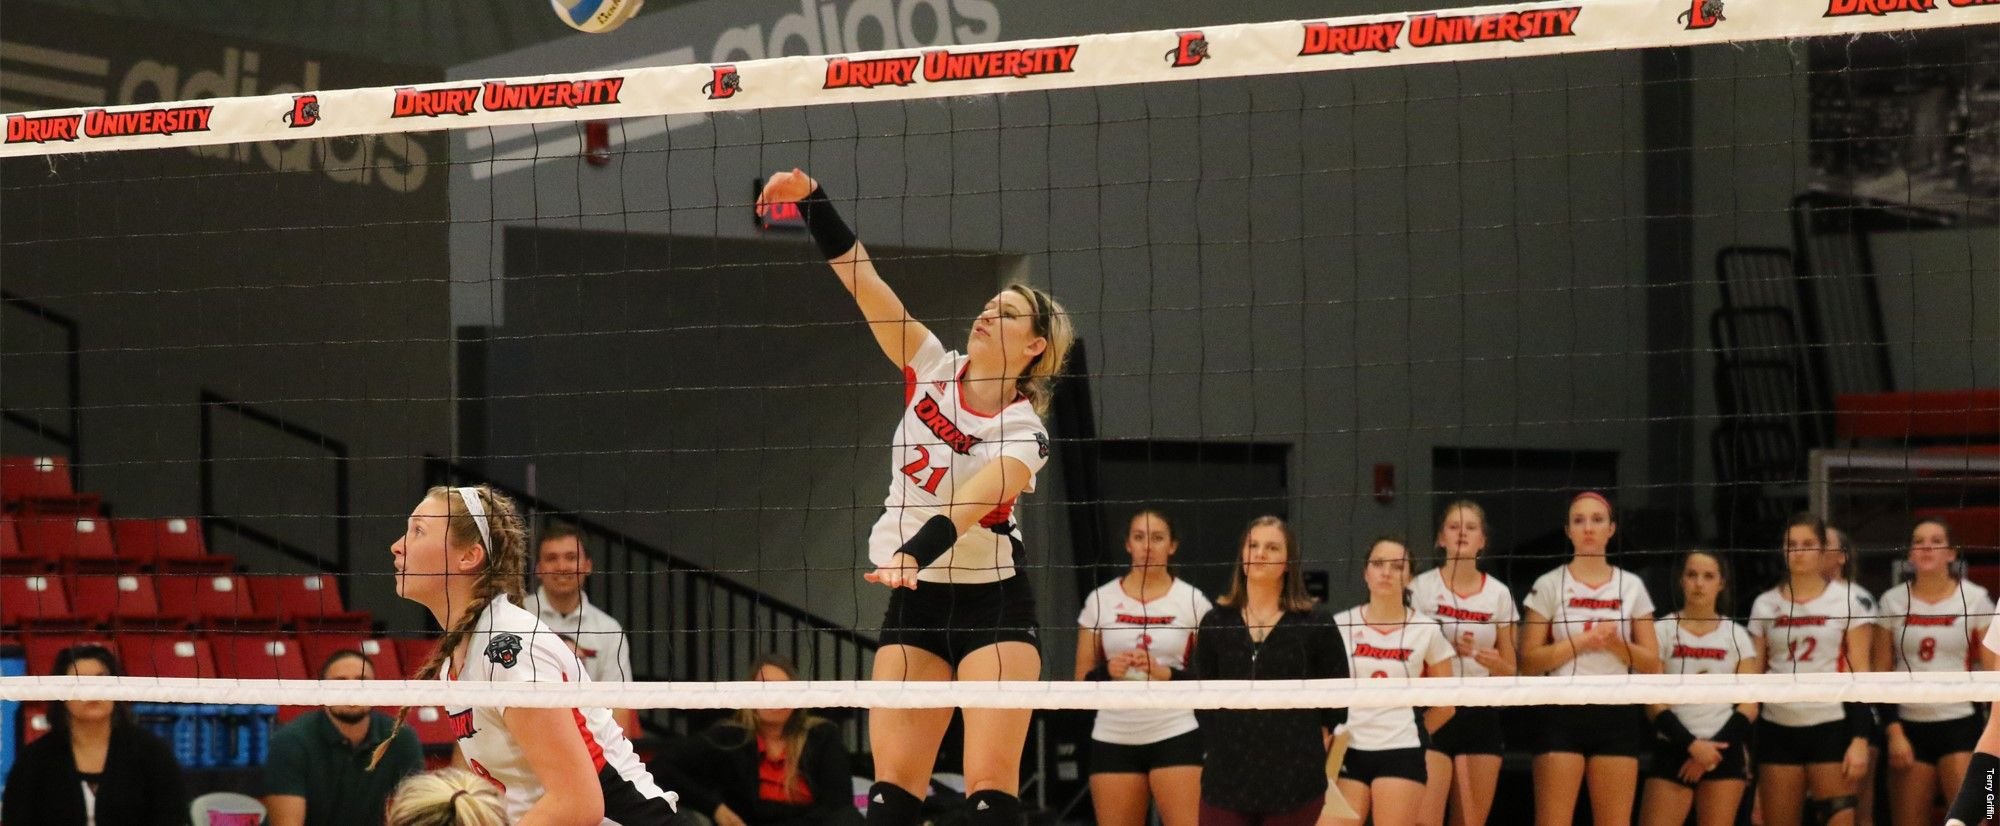 Du Volleyball Battles Past Jewell For 3 2 Win To Close Out Regular Season Drury University Seasons Volleyball